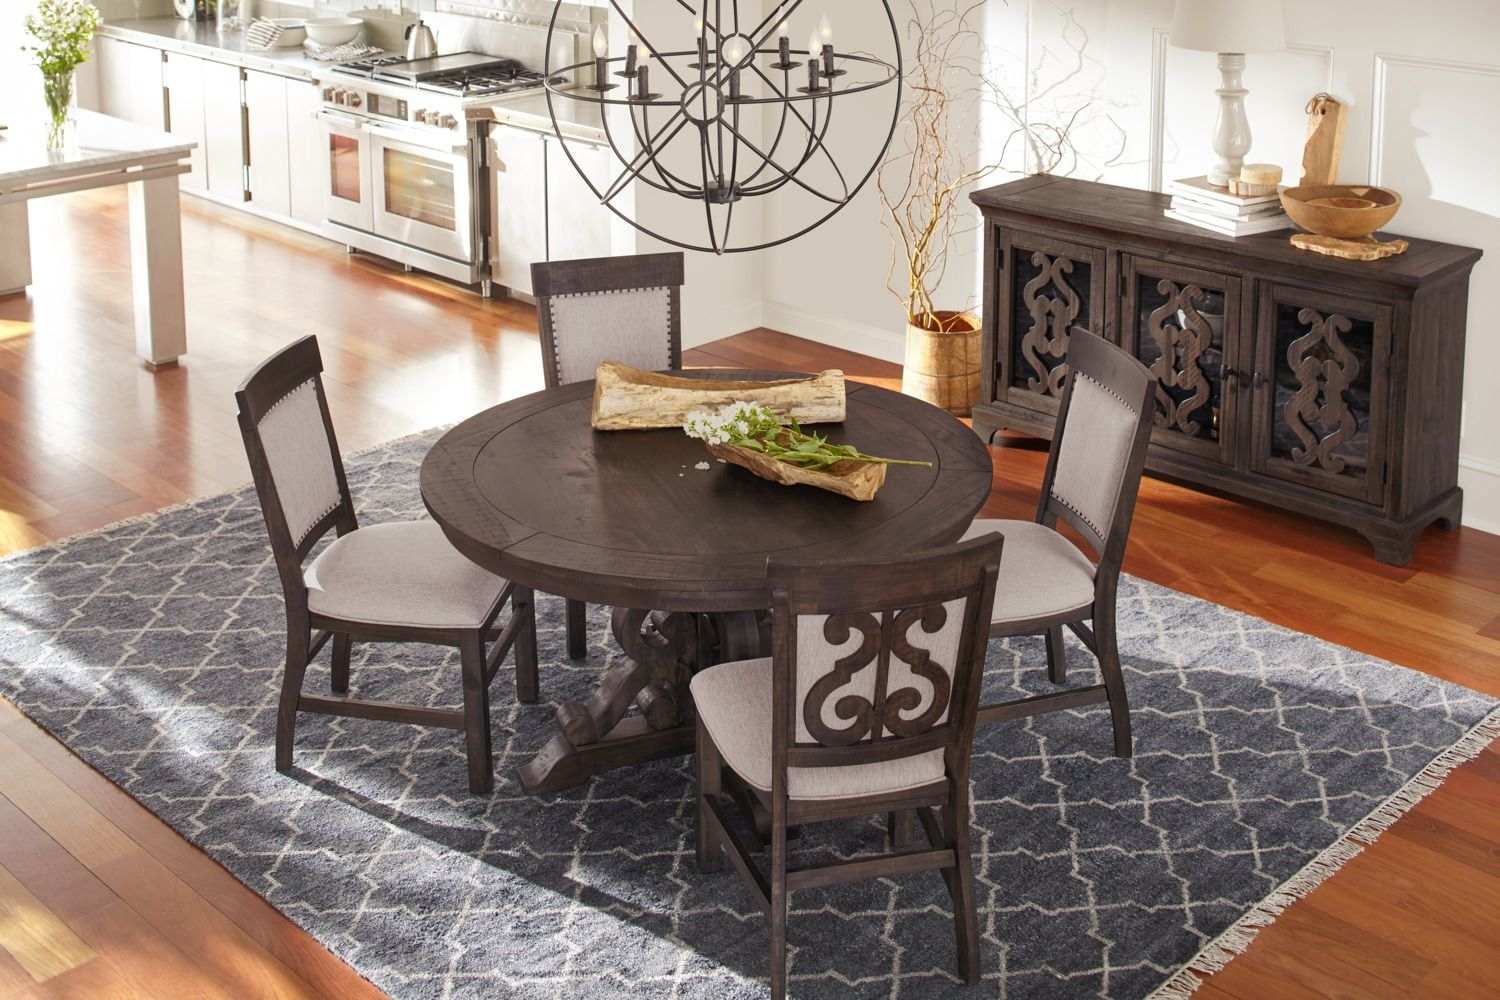 Charthouse Round Dining Table And 4 Upholstered Side Chairs Charcoal American Signature Furni Dining Table Upholstered Side Chair Upholstered Dining Chairs